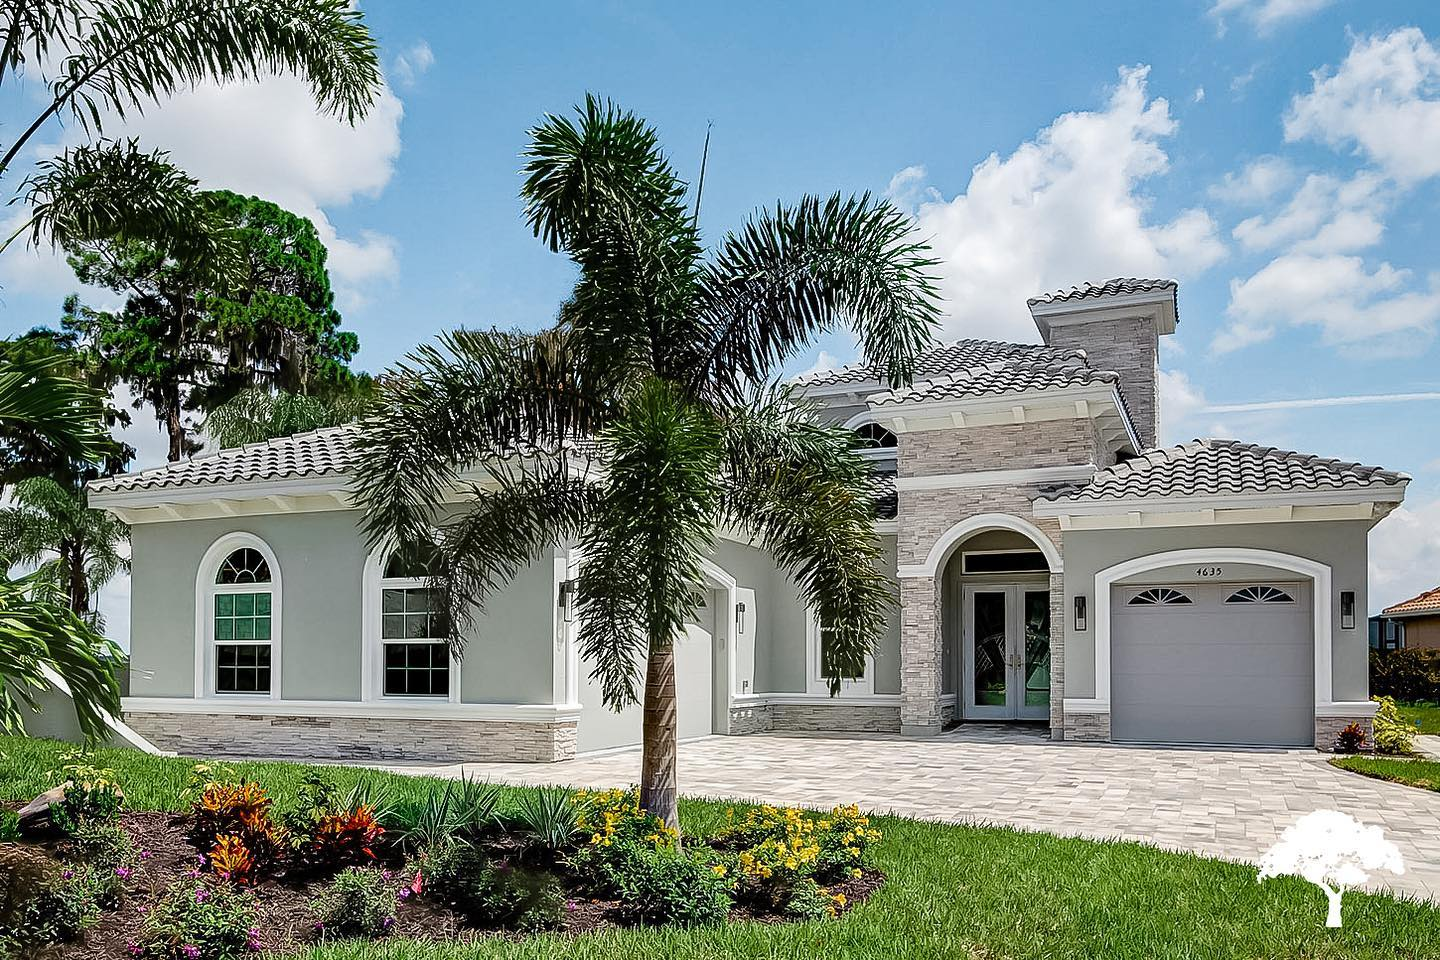 south tampa front yard landscaping